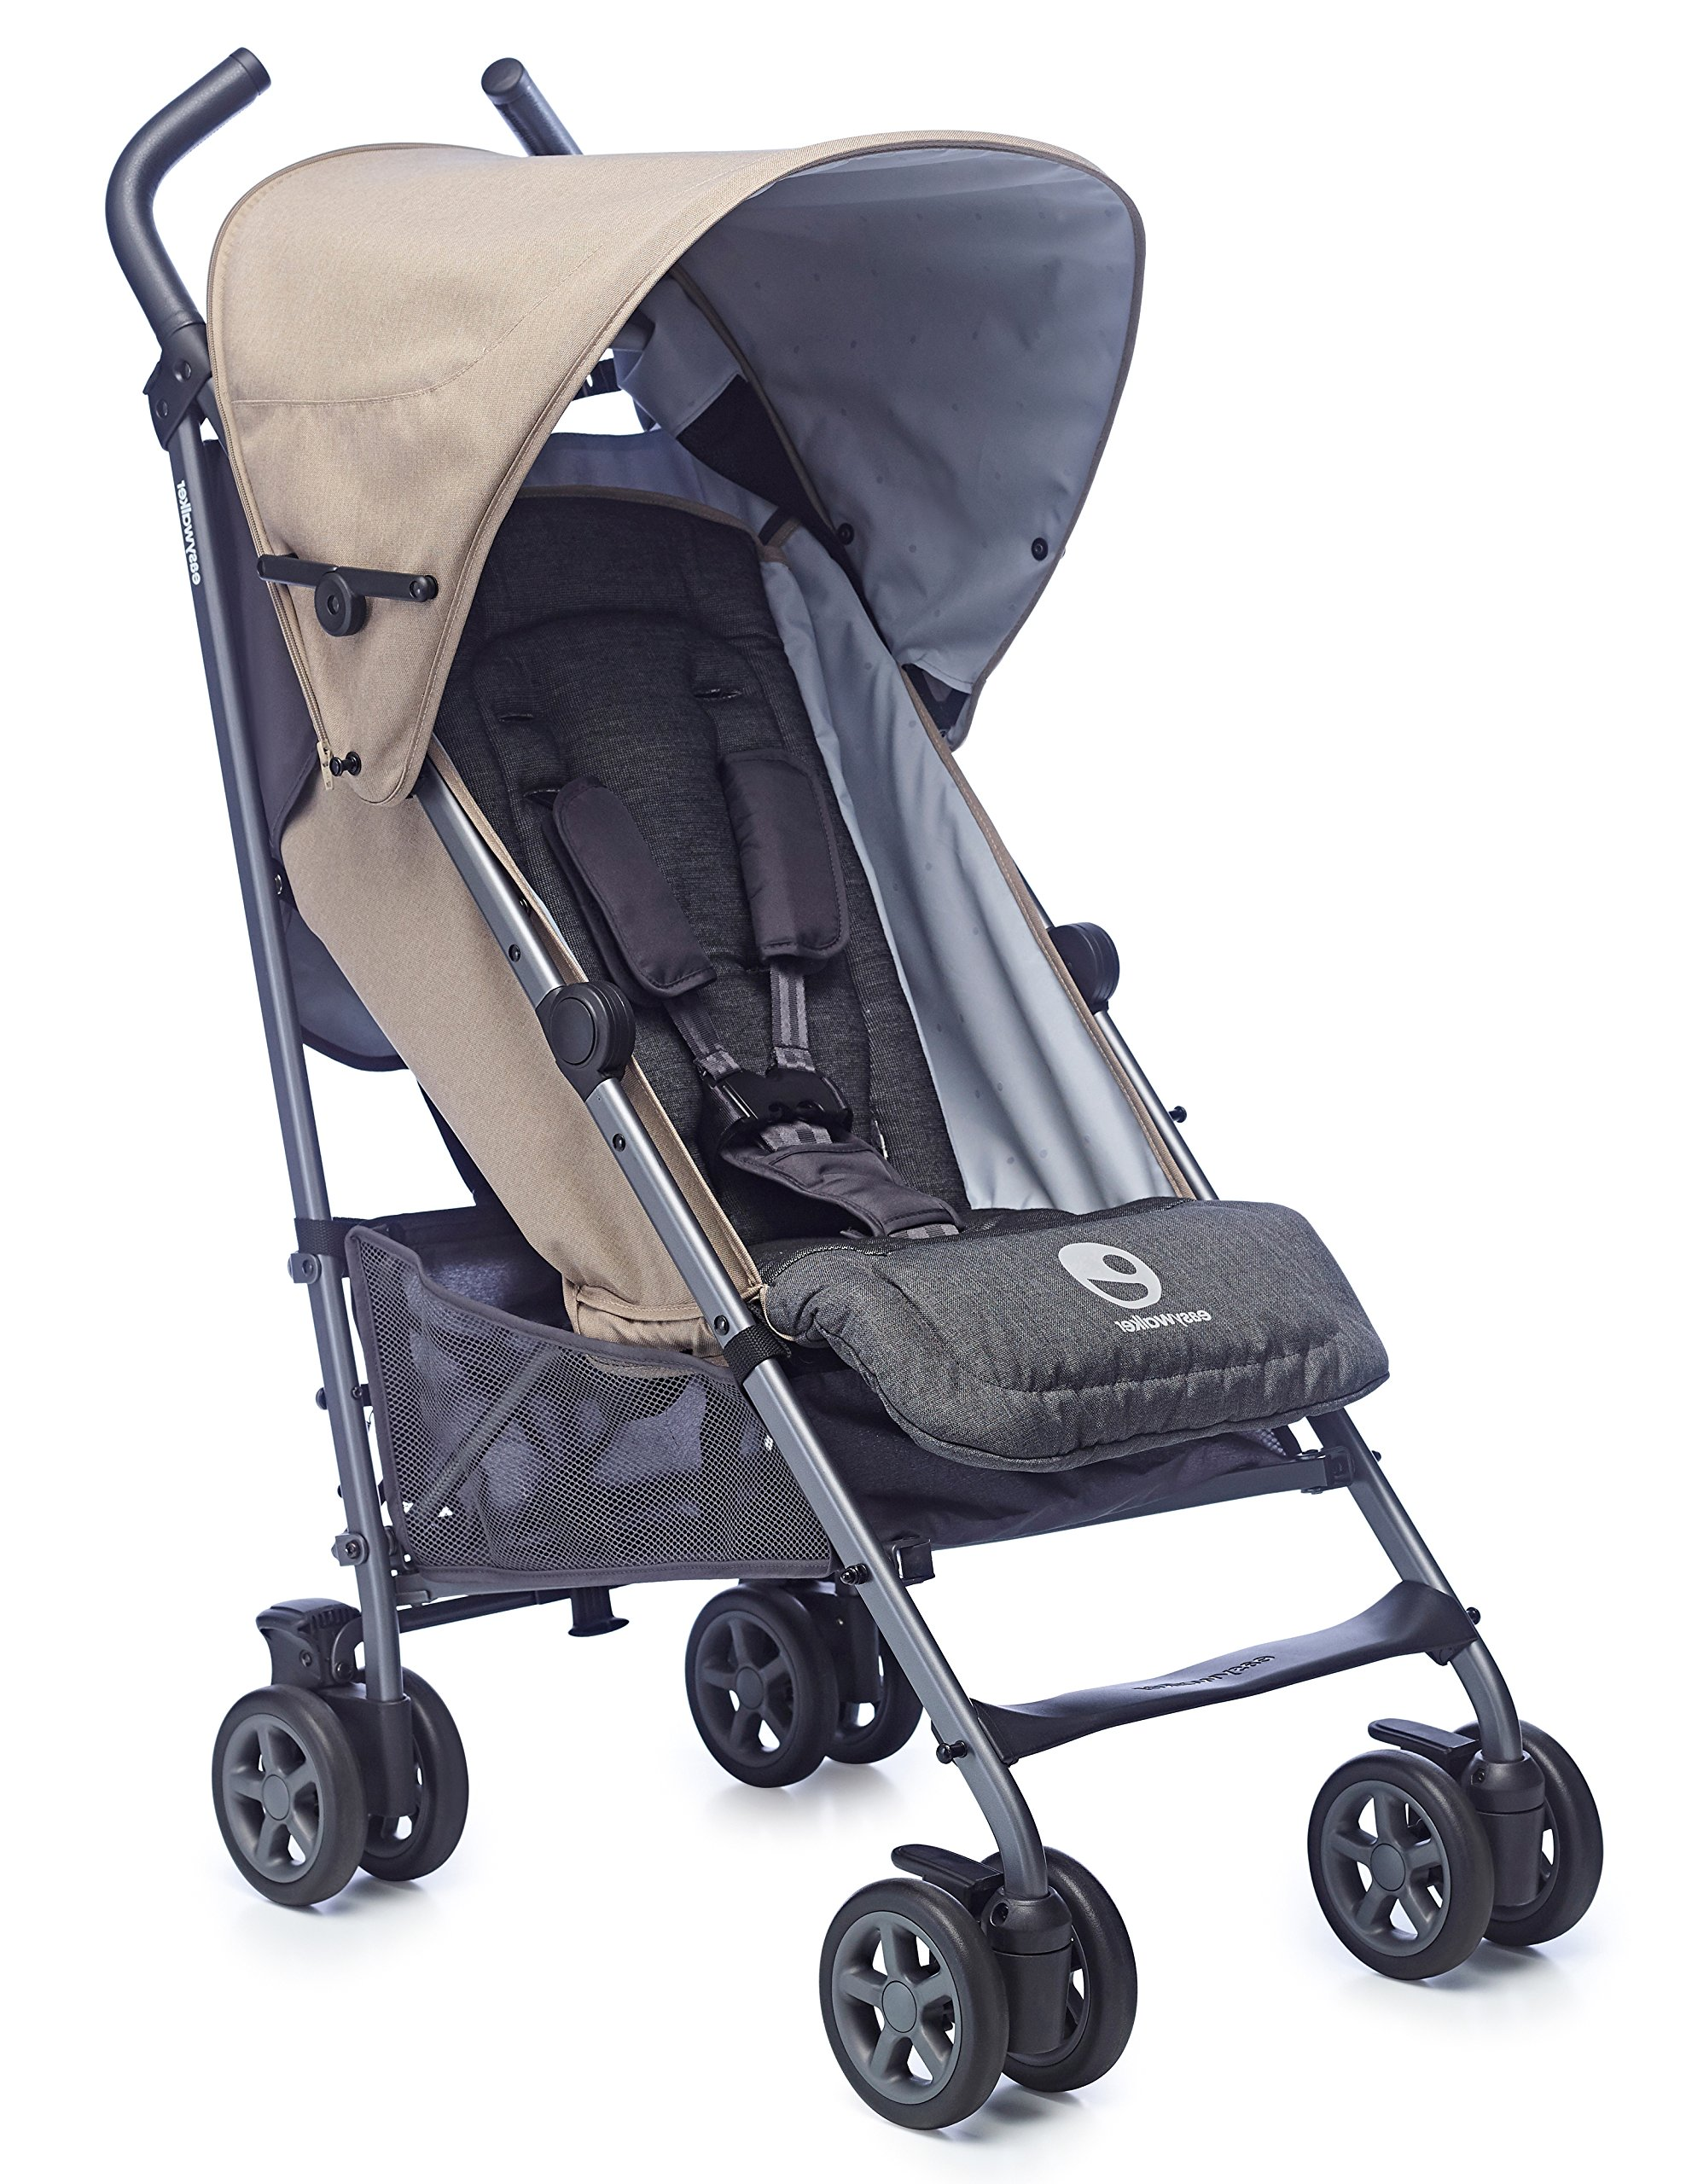 Easywalker Buggy Ibiza Brunch  Suitable from birth 5 point 3 position harness Four recline positions with near flat recline 1